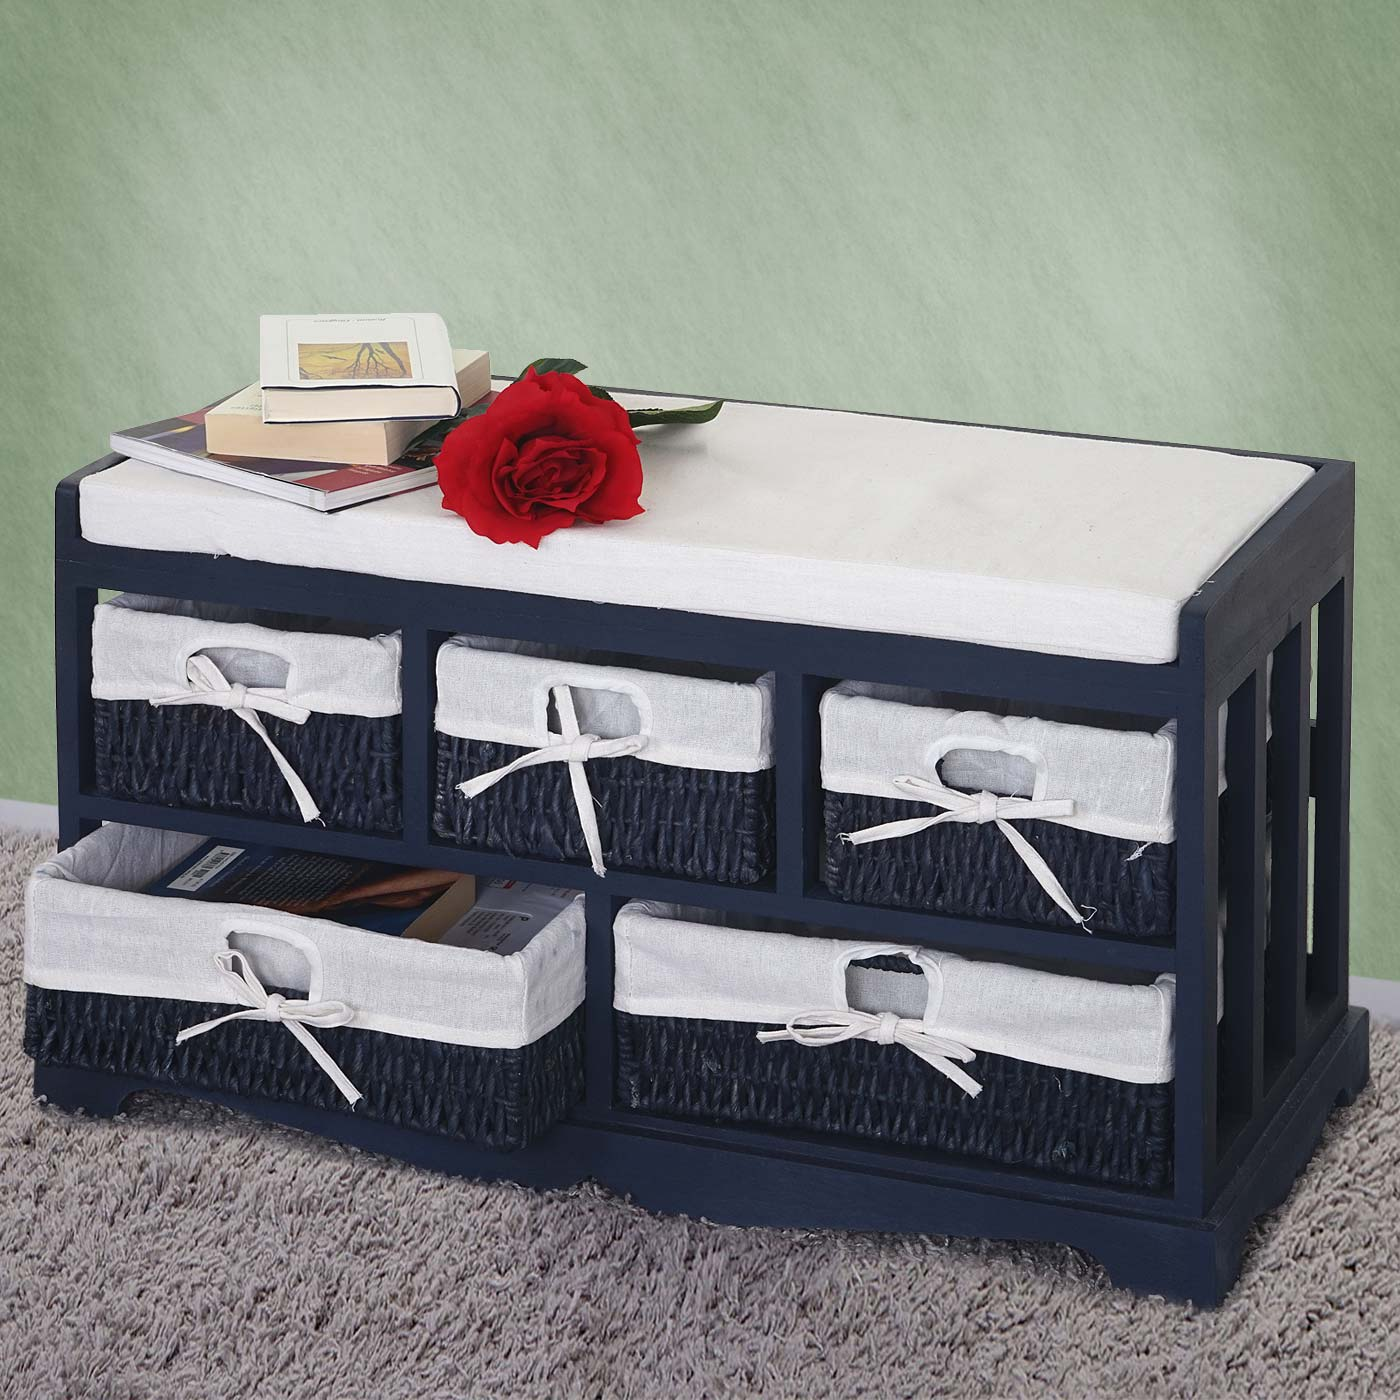 kommode und sitzbank mit 5 schubladen 77x45x36cm shabby. Black Bedroom Furniture Sets. Home Design Ideas